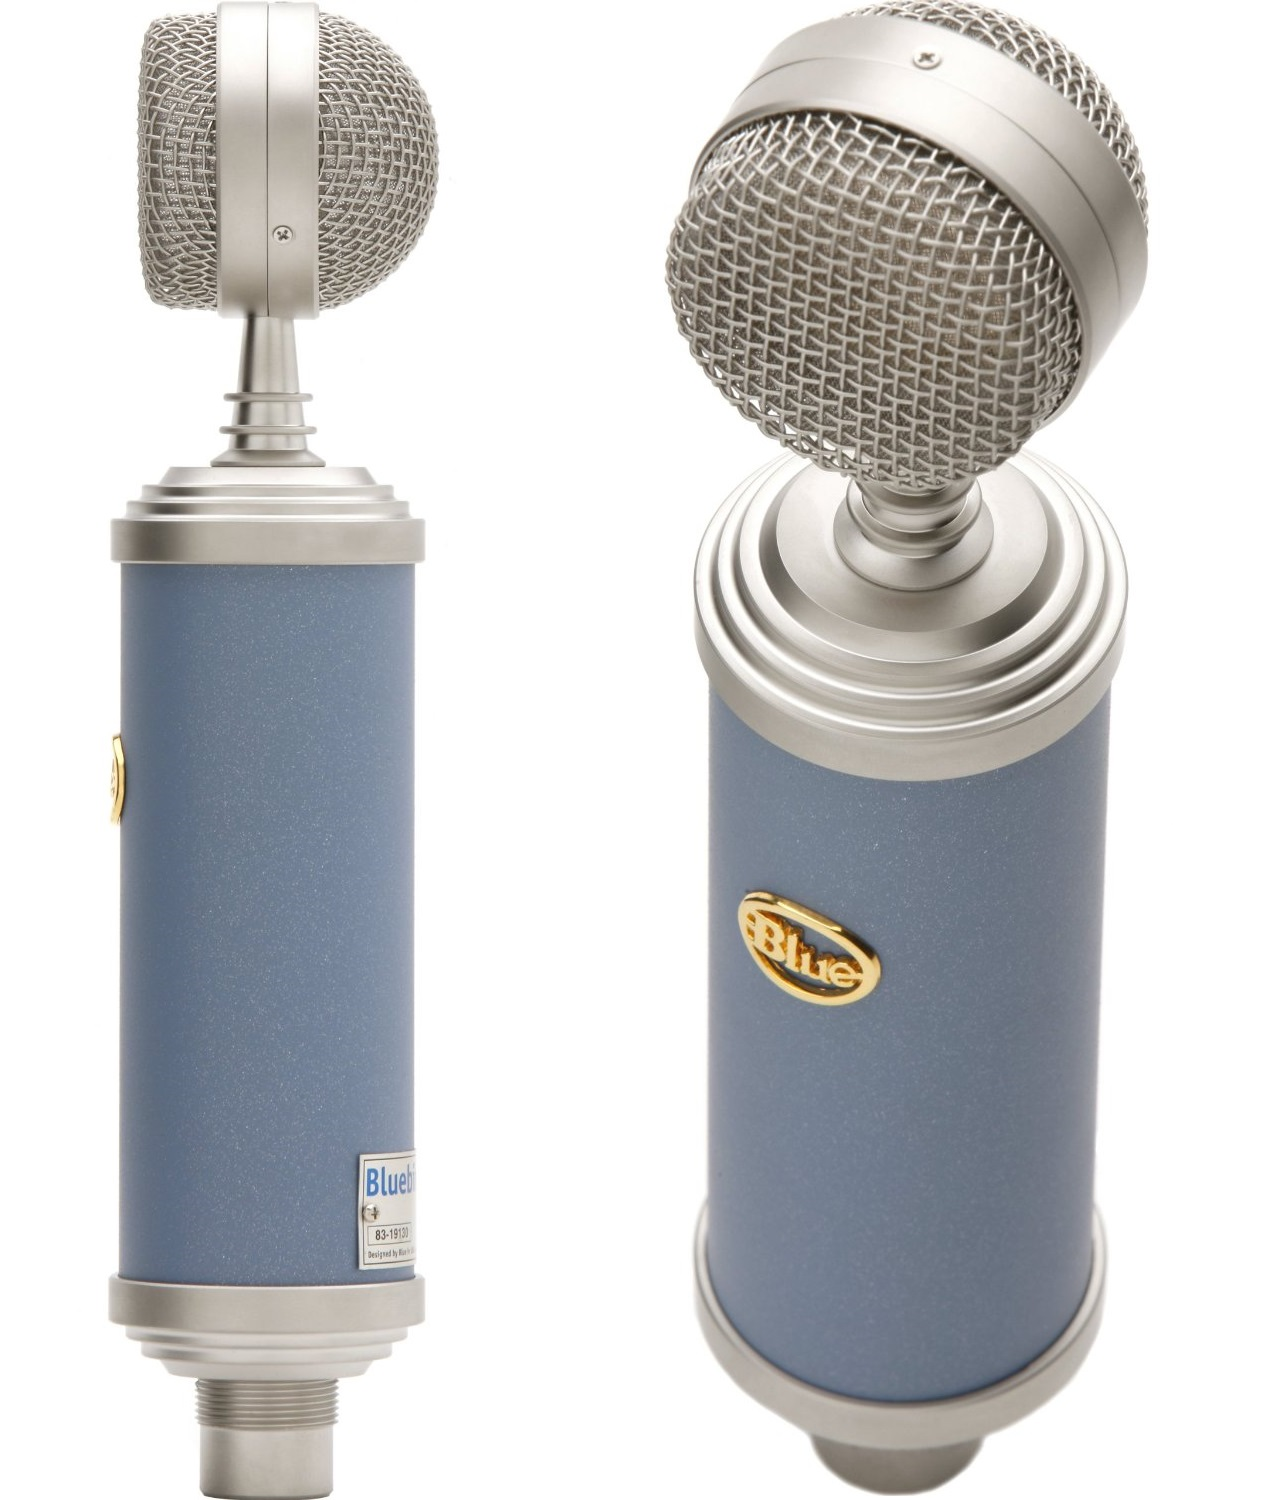 13 Best Voice Over Microphones From 100 To 4000 Stand Microphone Mic Holder For Recording Blue Bluebird Cardioid Condenser